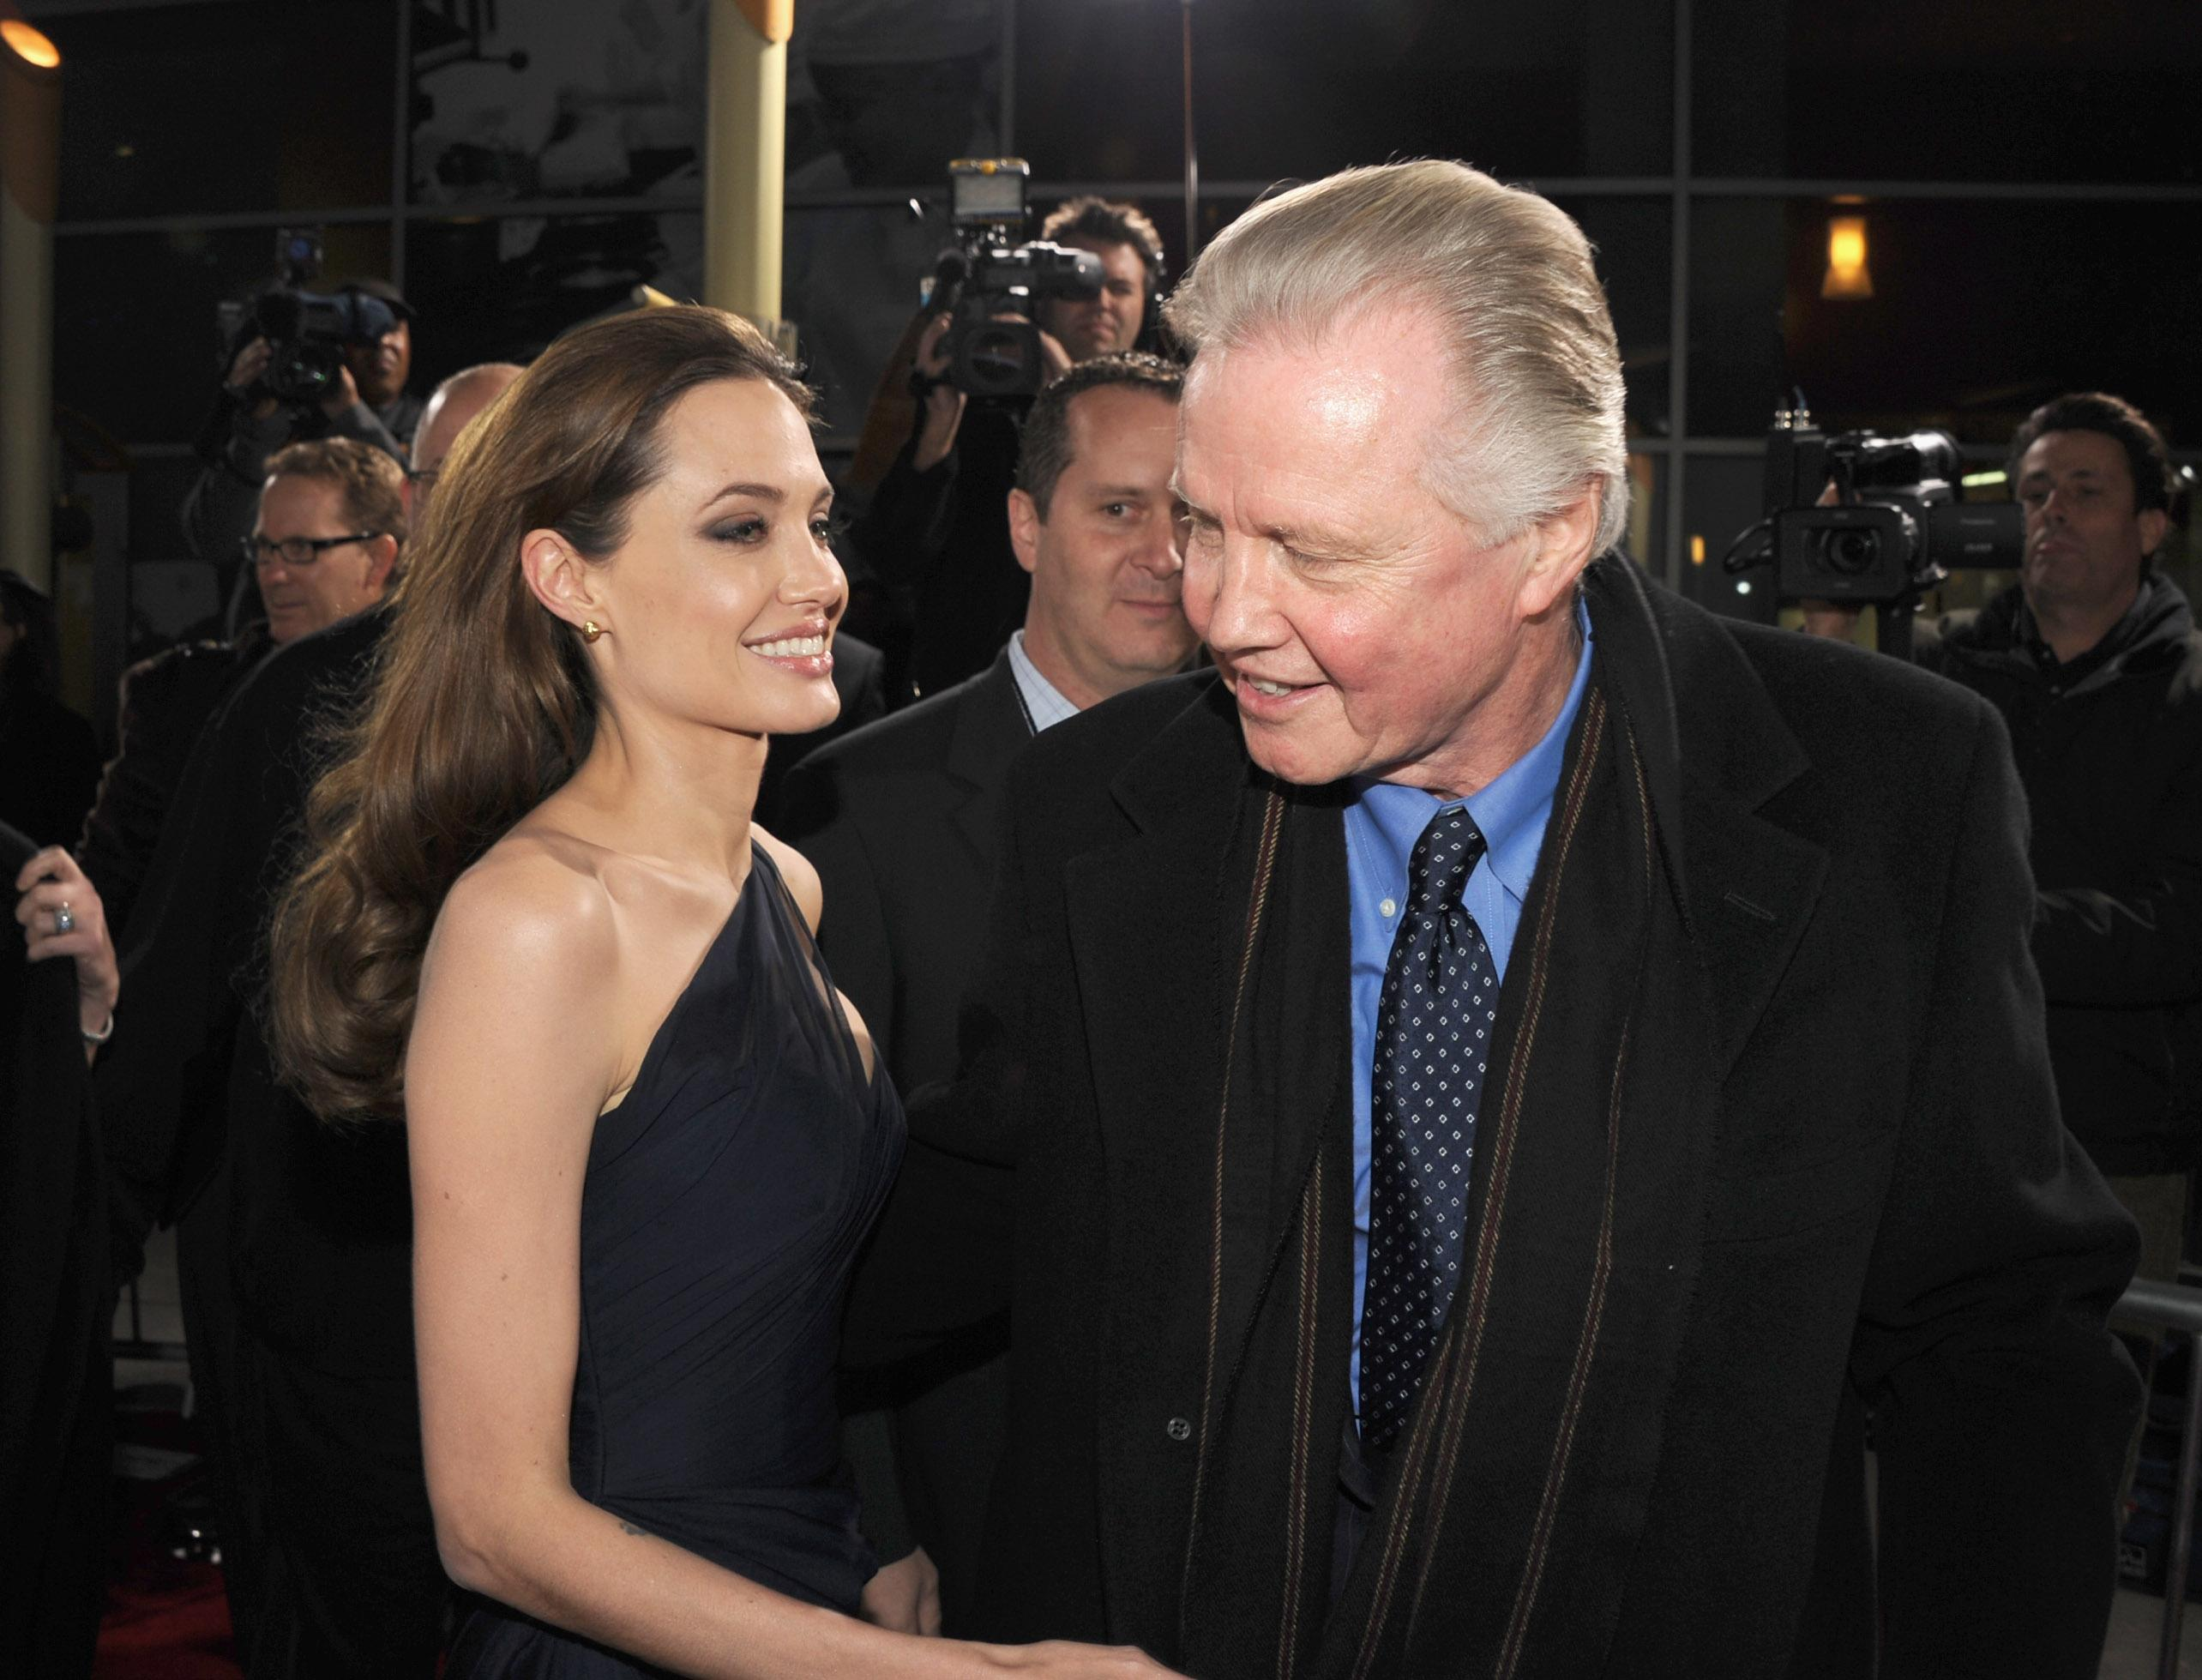 Angelina Jolie and Jon Voigt